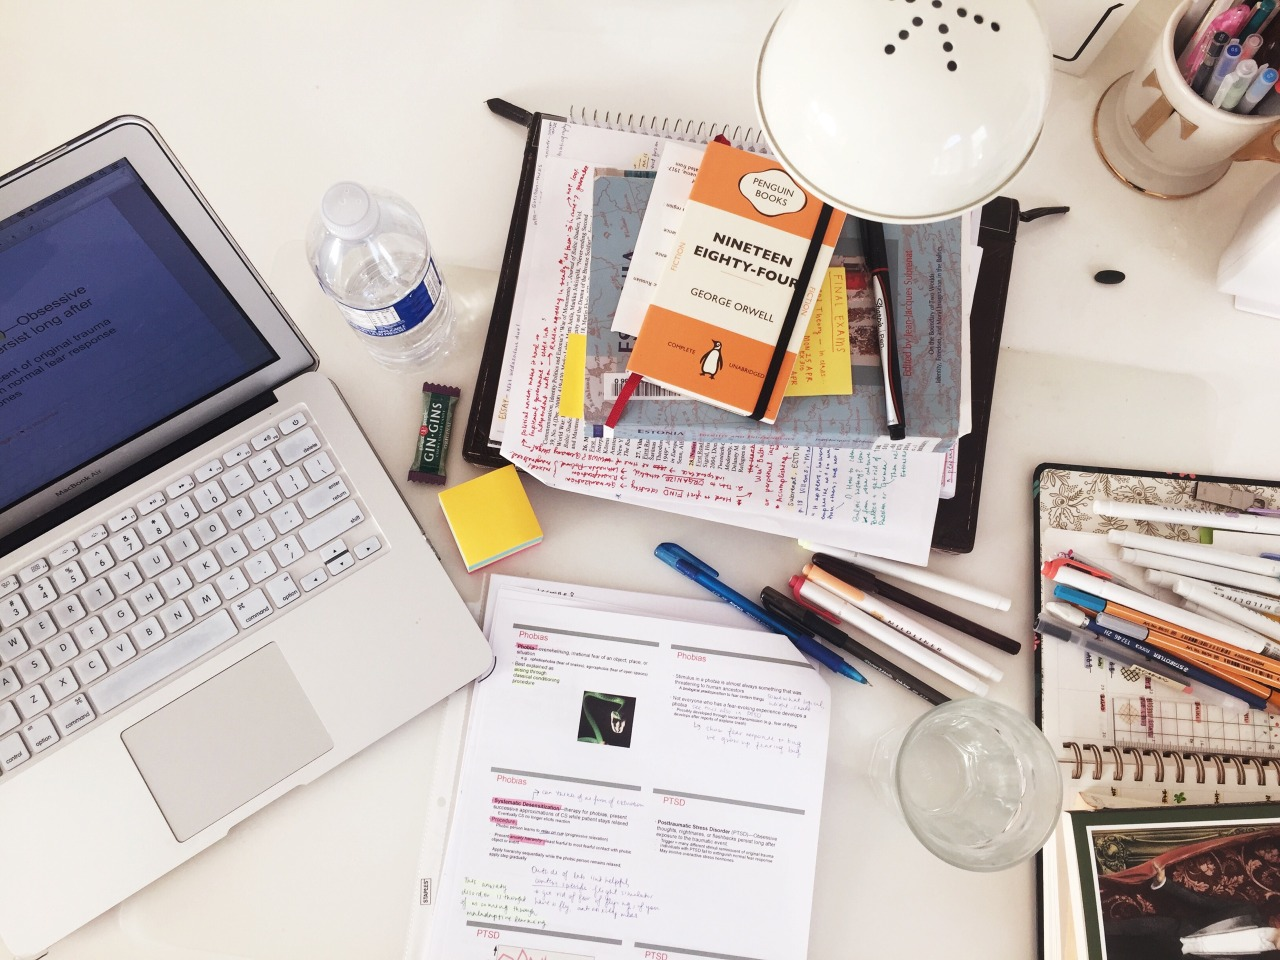 study place, notes, school supplies and uni